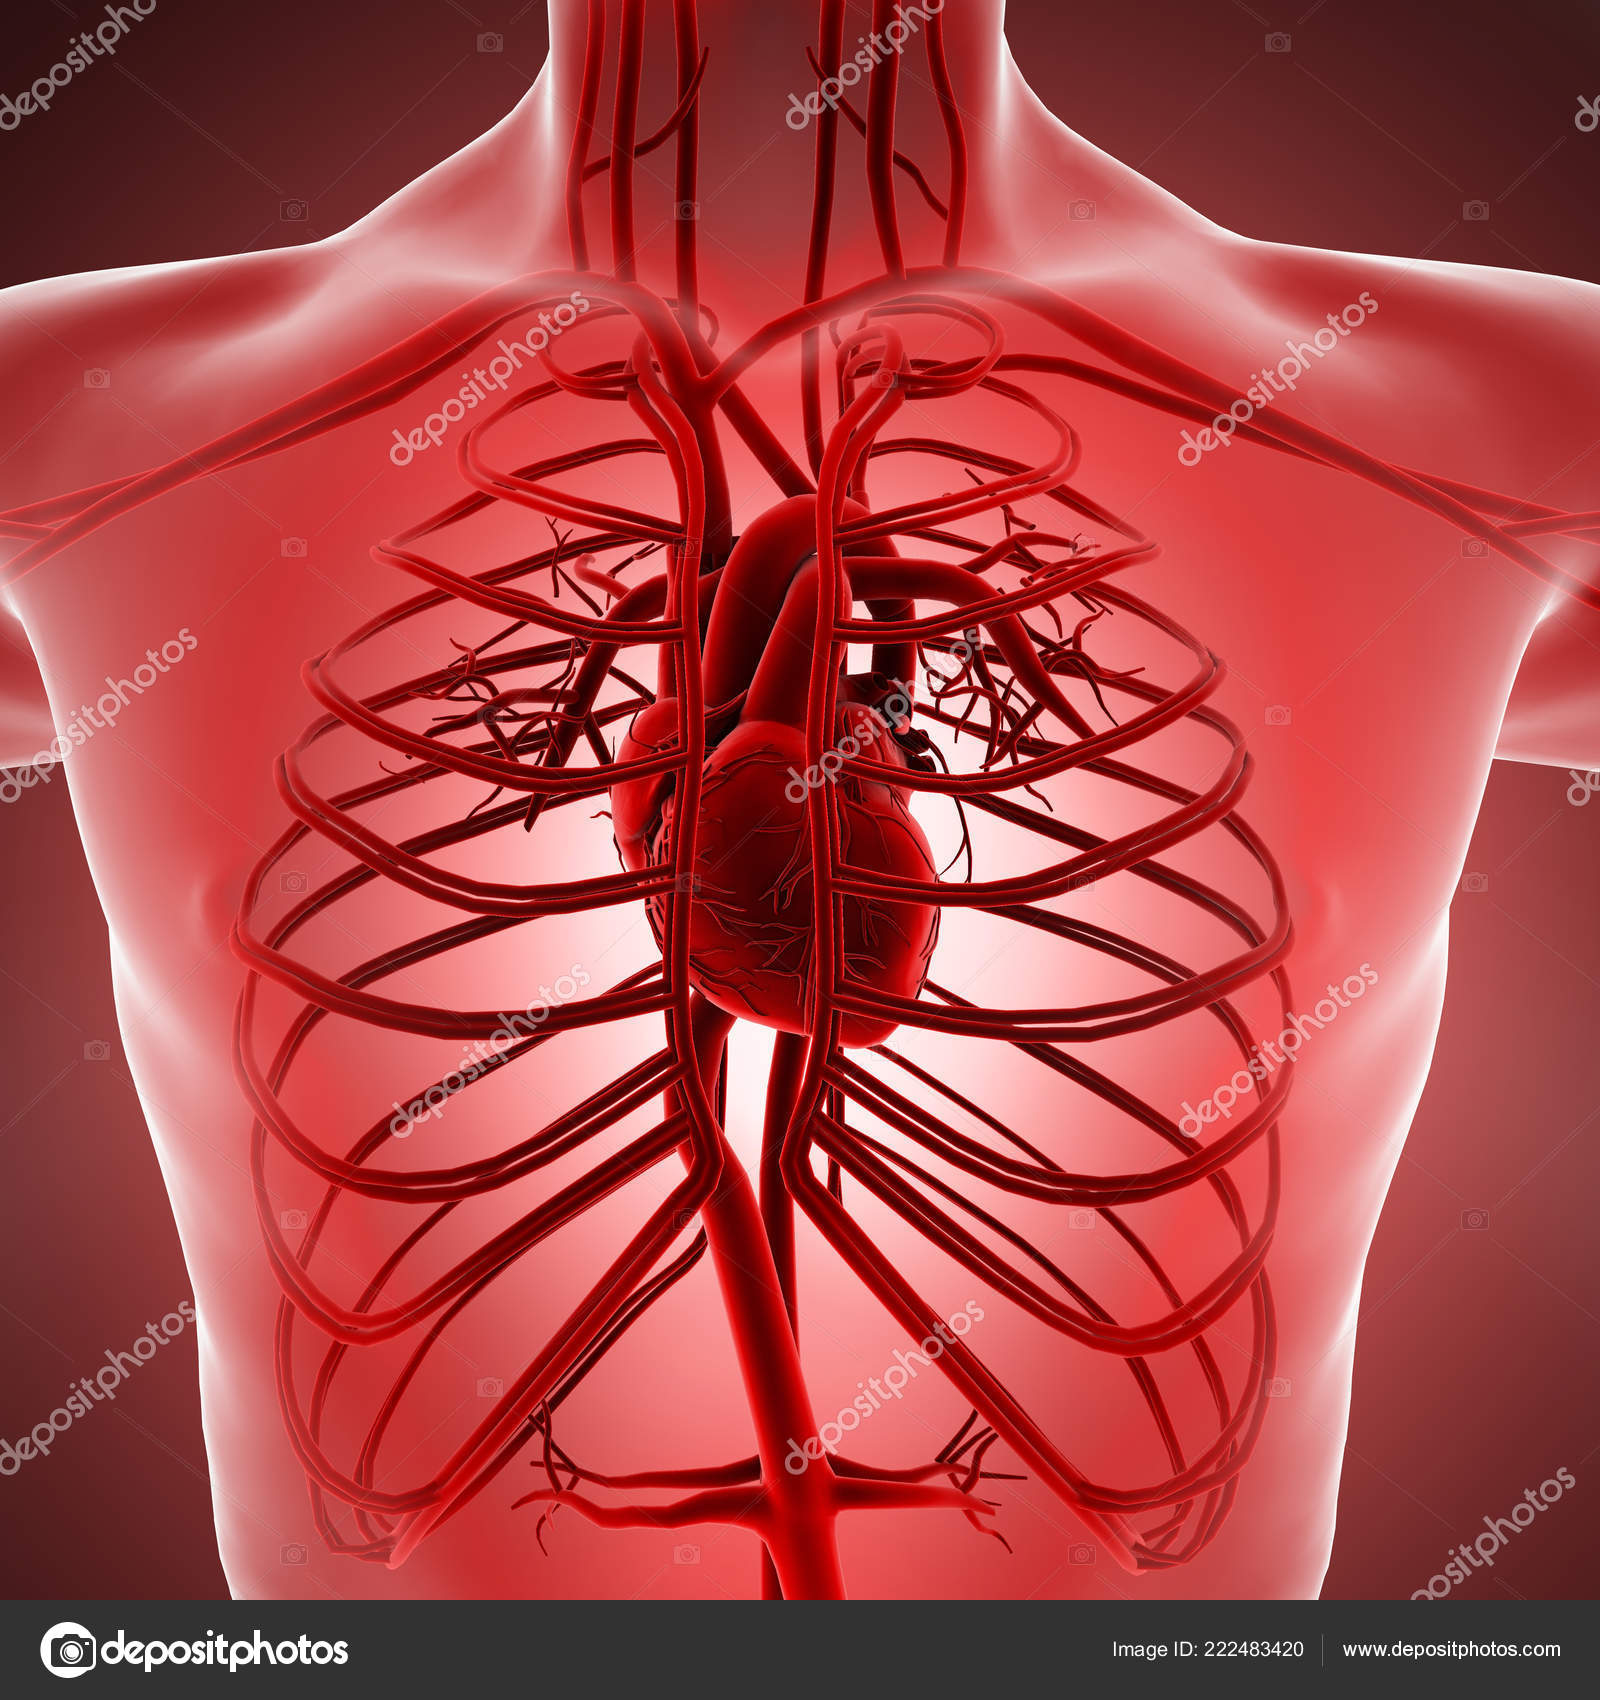 Pictures : Arteries And Veins Of The Body